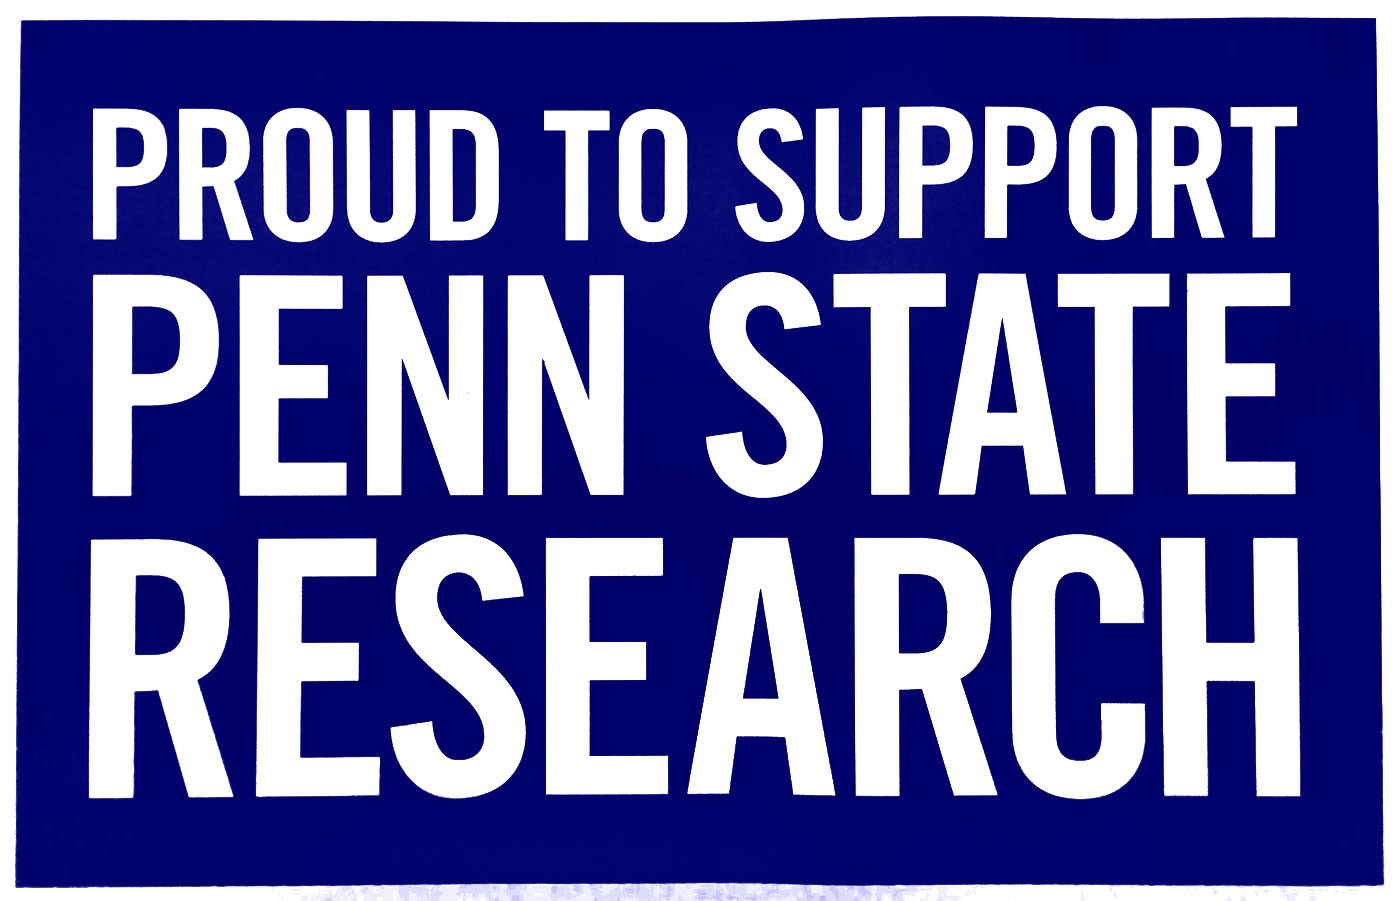 A banner says Proud to Support Penn State Research on three lines, with research in very large letters.